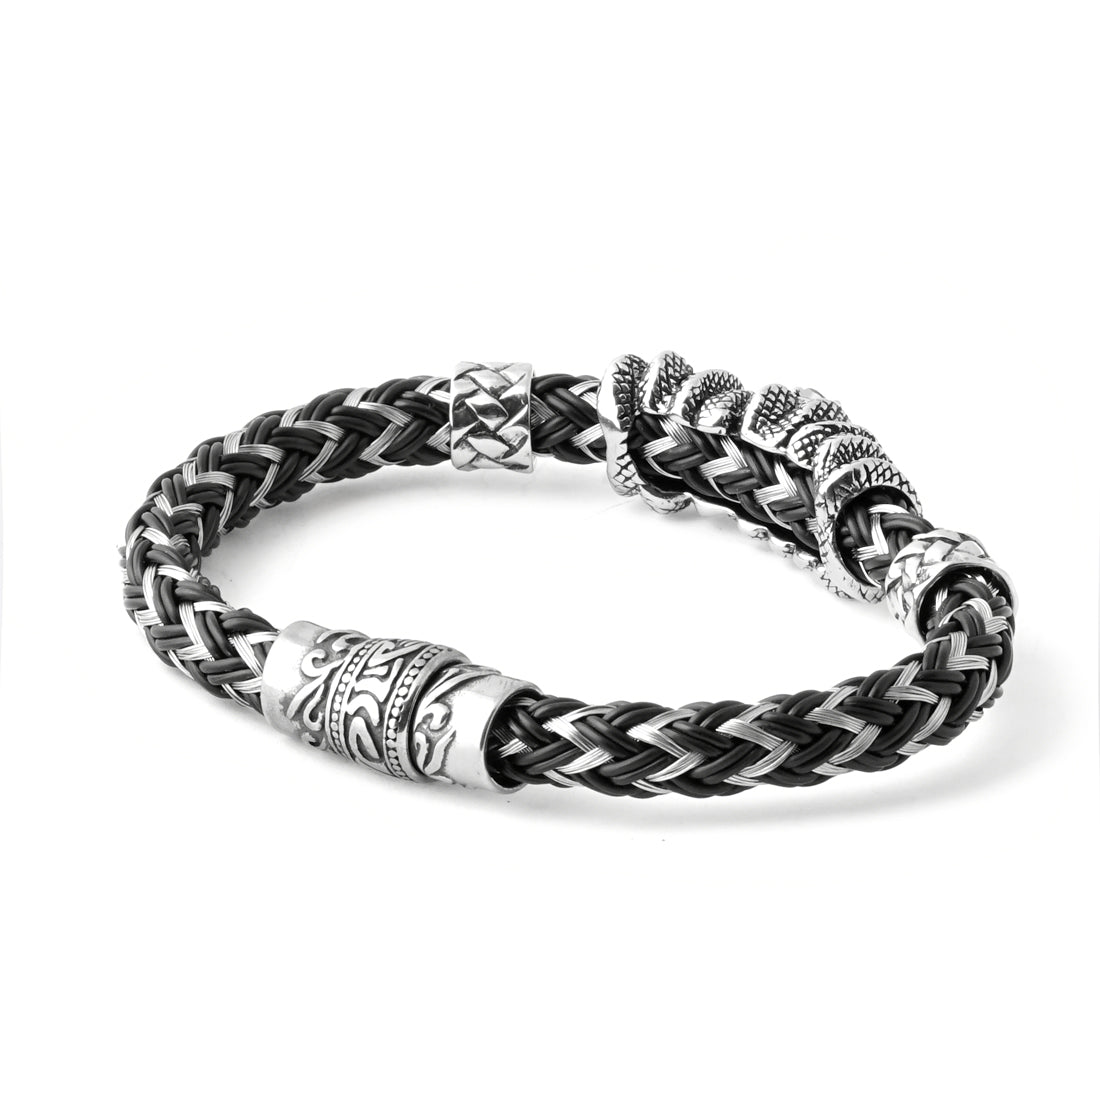 BLACK Stainless Steel Wire and Rubber Bracelet - URBANCREWS